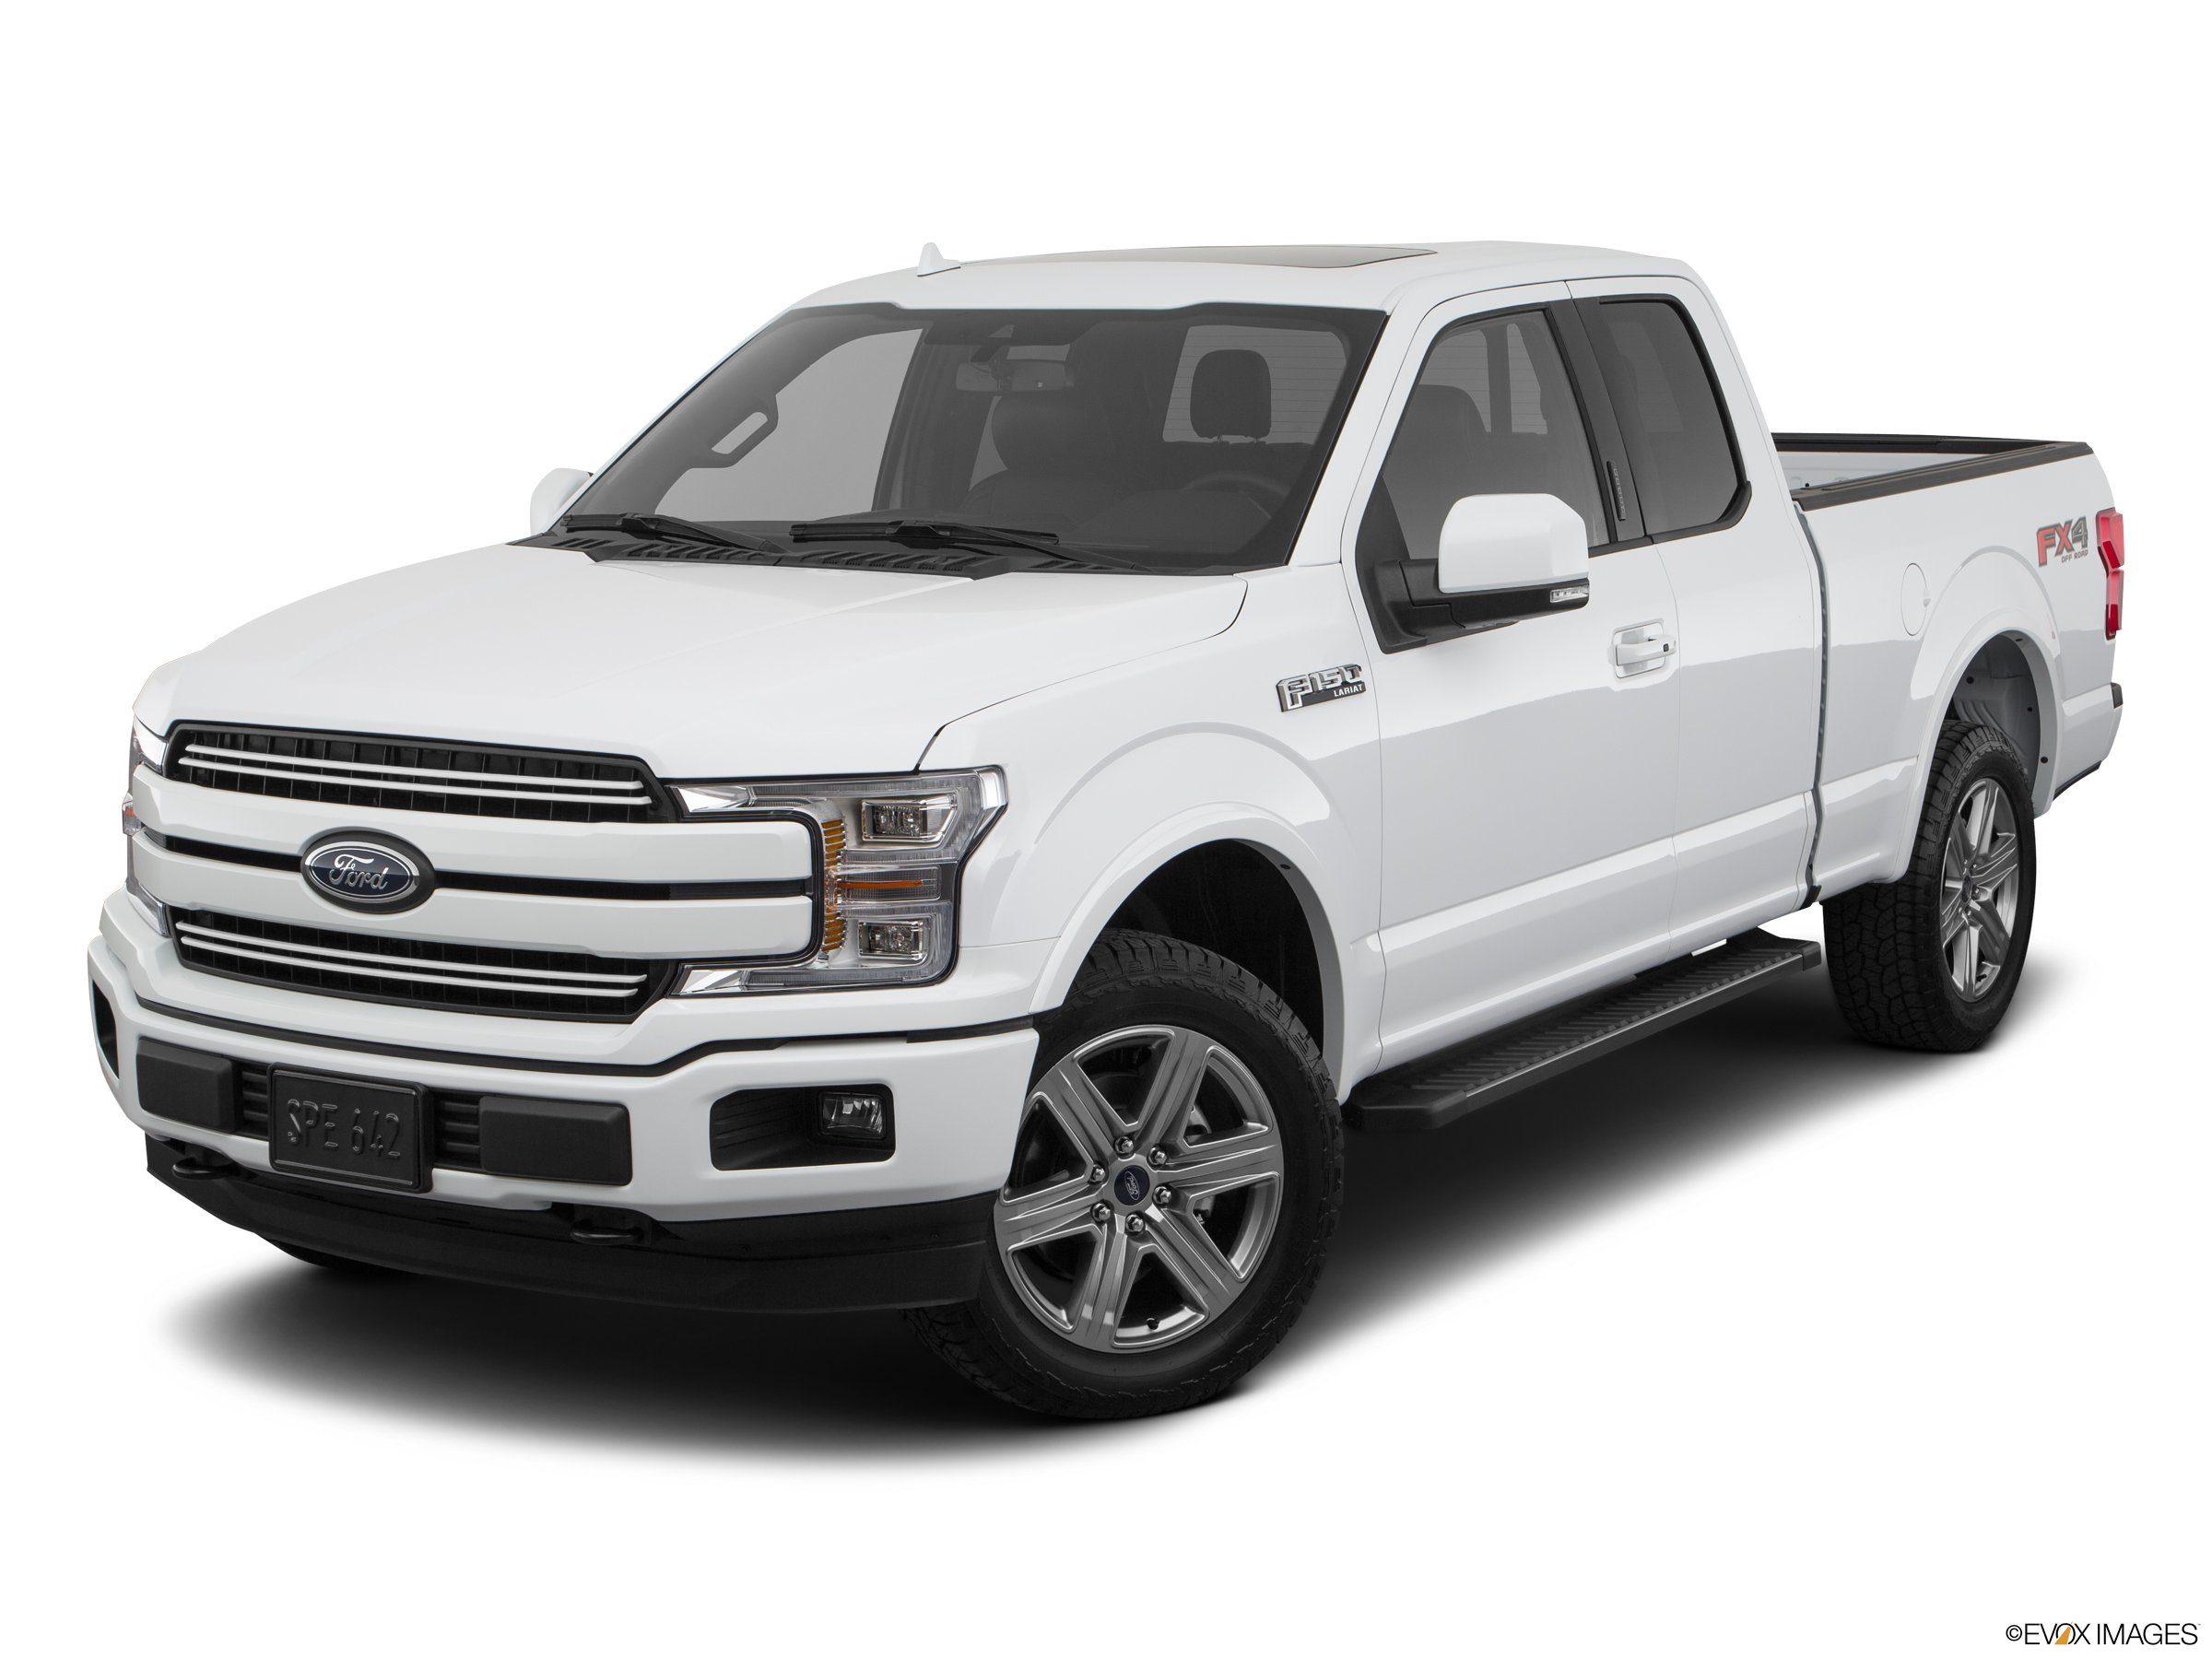 2020 Ford F-150 Lariat 4×4 pickup